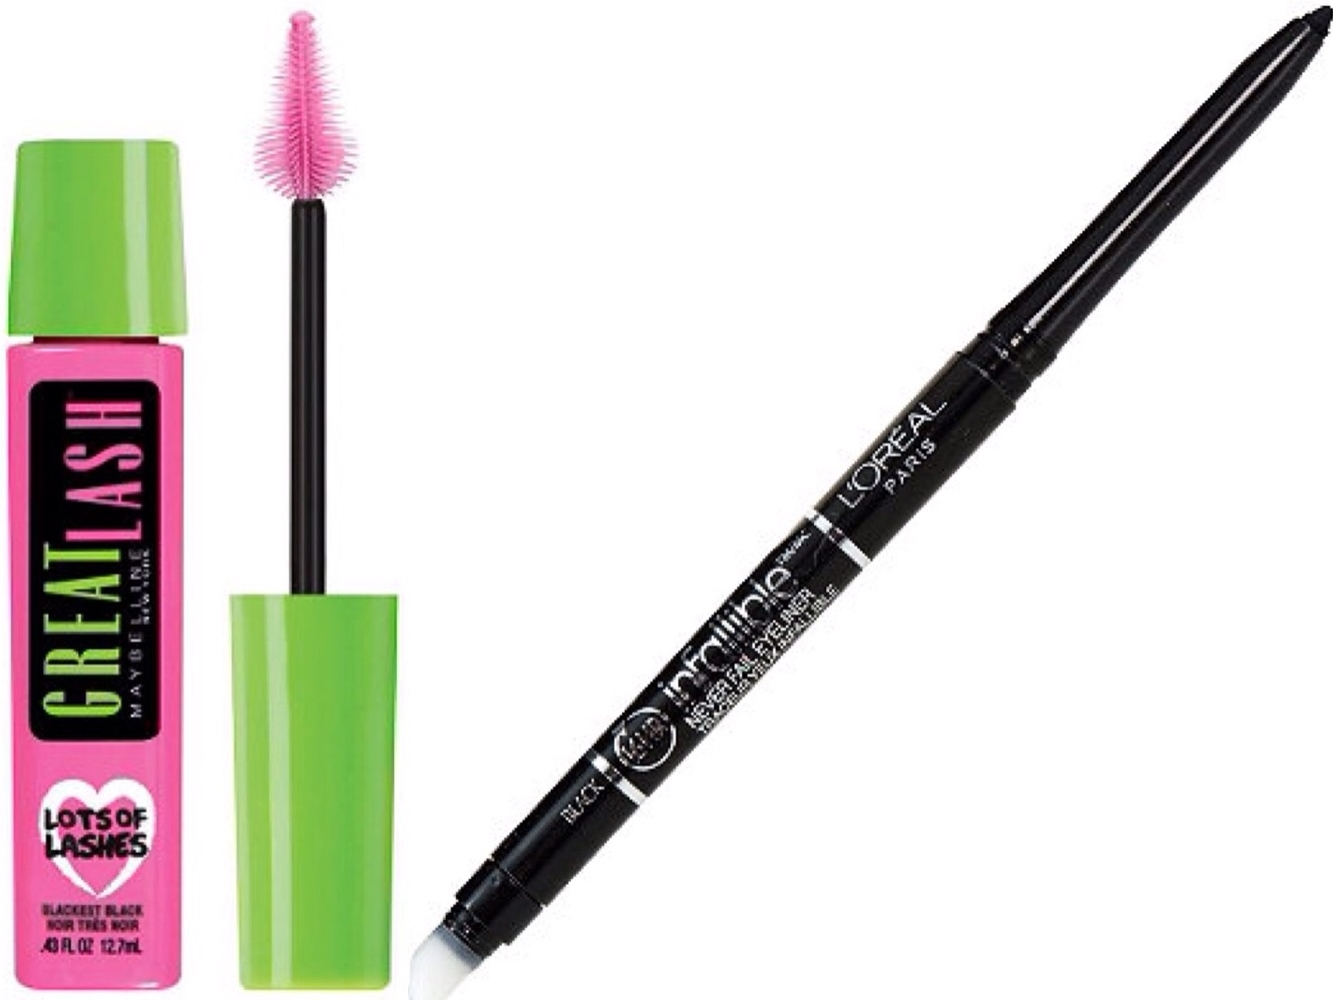 Maybelline Great Lash & L'oreal Infallible Eyeliner